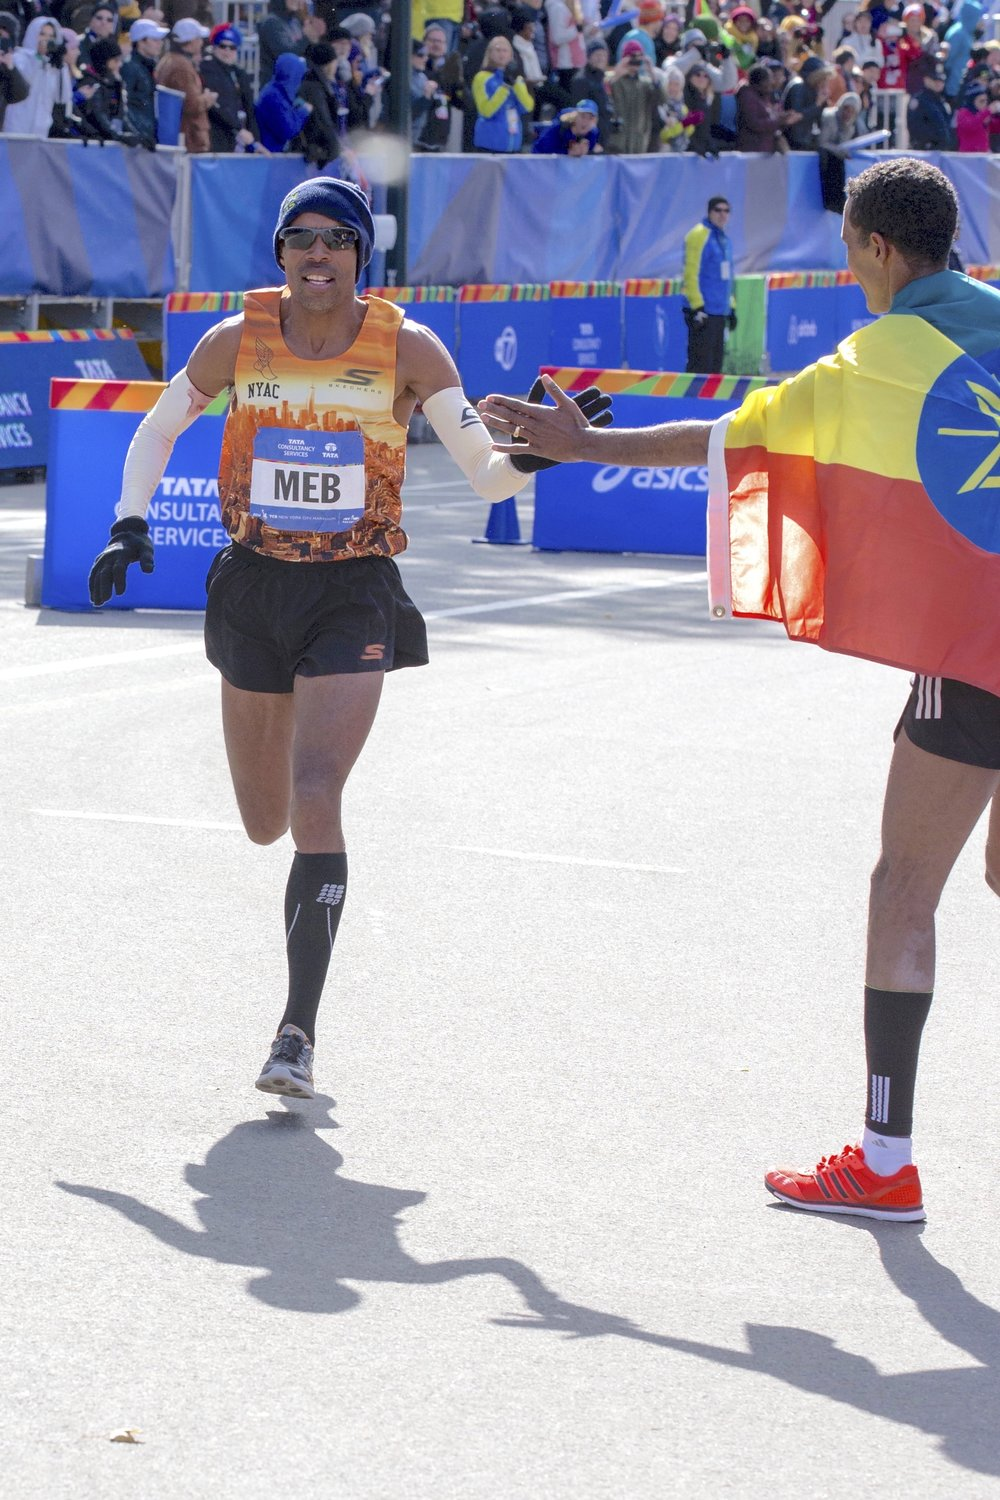 Gebre Gebremariam, the 2010 New York City Marathon champion, greets the 2009 champion on the homestretch